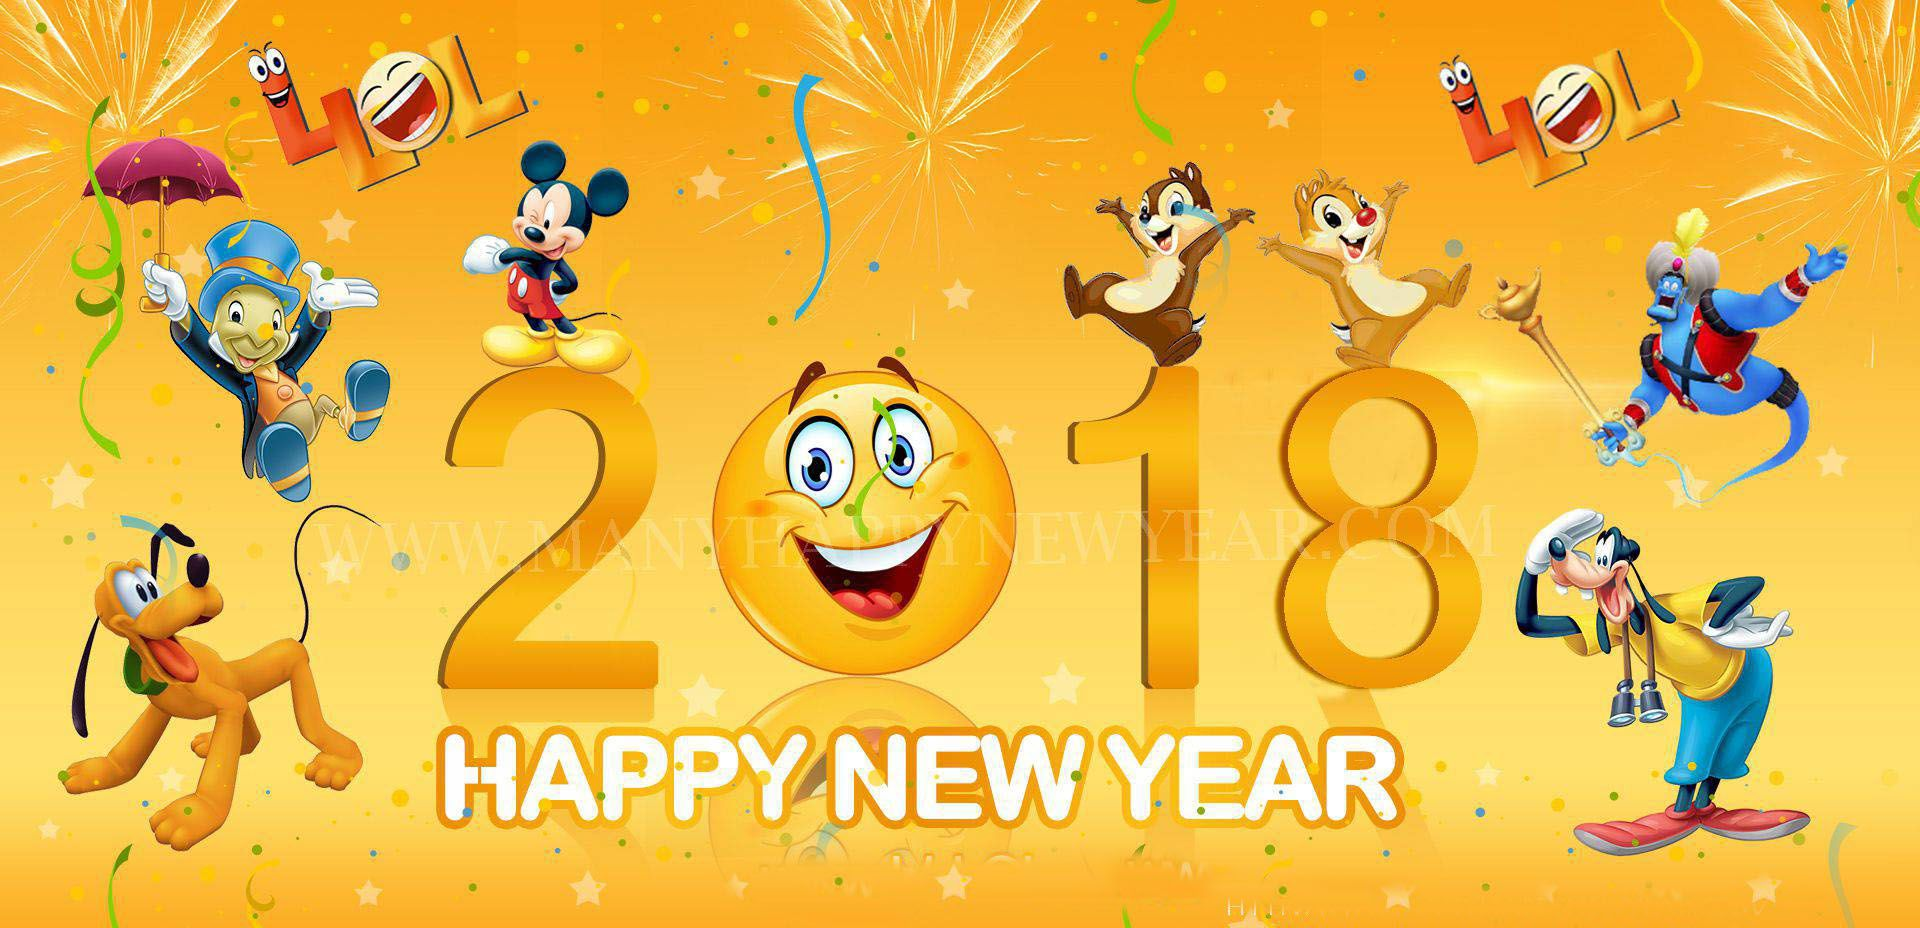 happy new year 2018 happy new year happy new year wishes happy new year images happy new year 2018 wishes happy new year 2018 quotes in punjabi